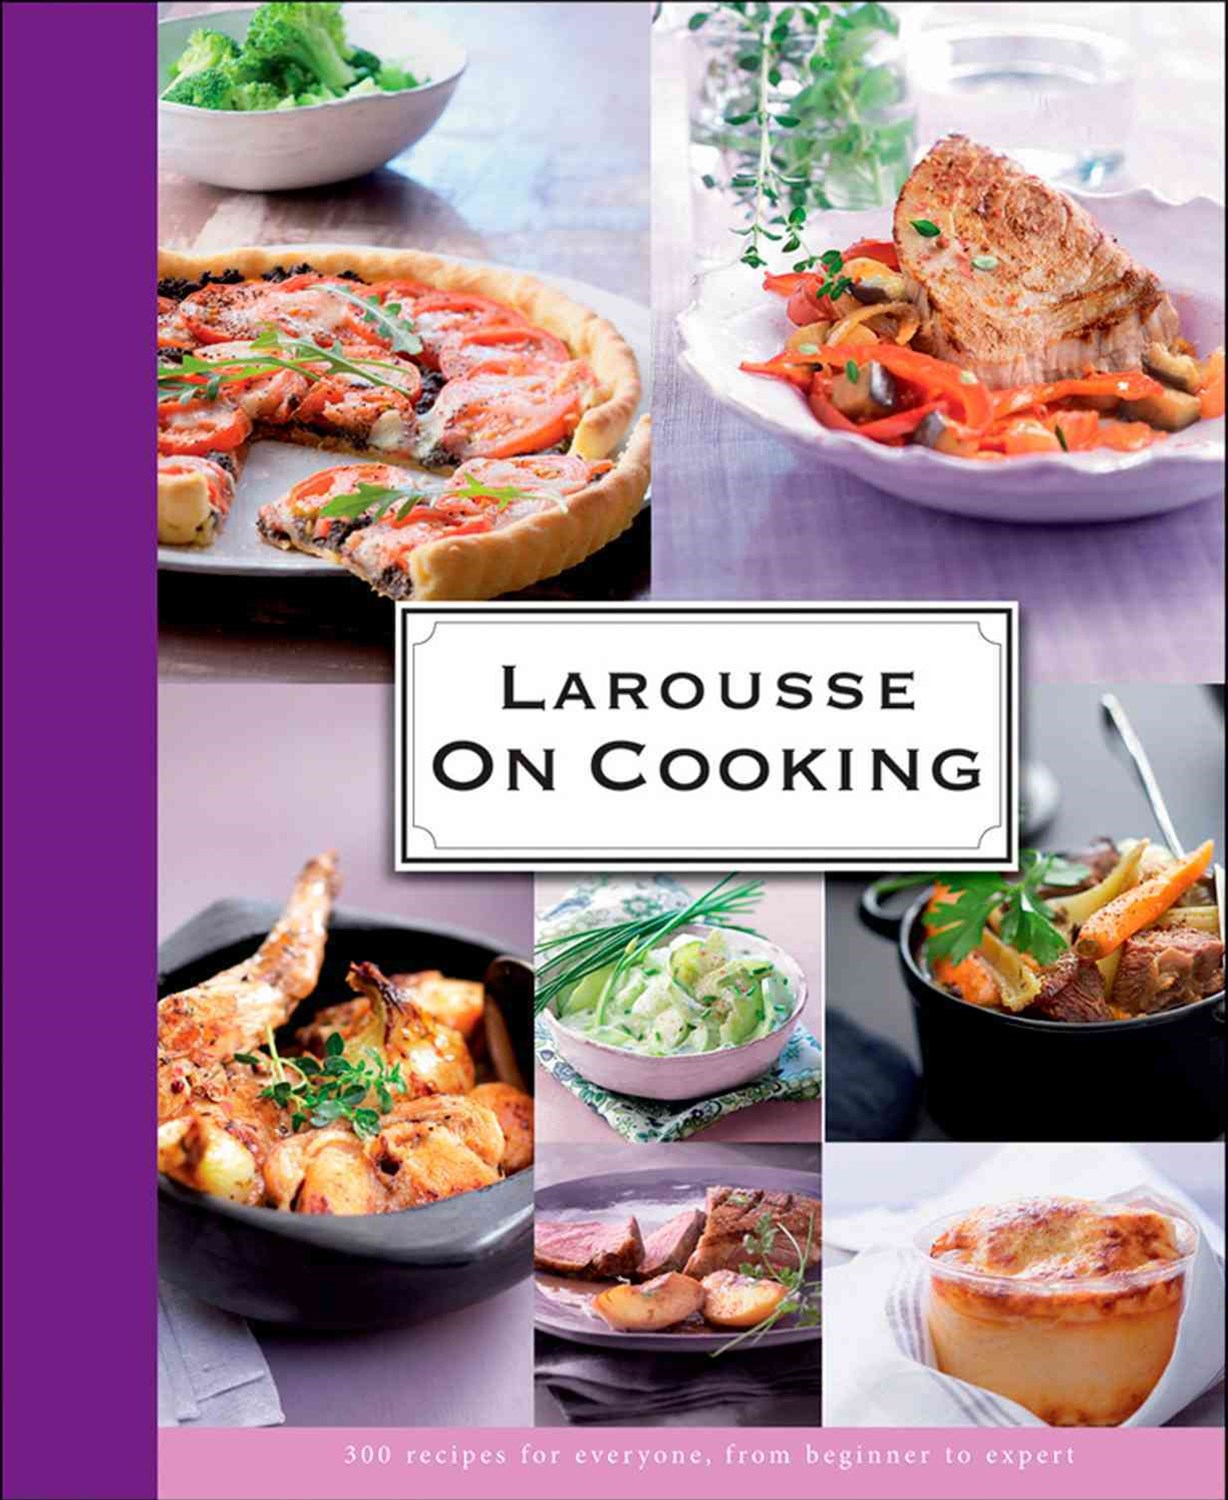 Larousse on Cooking